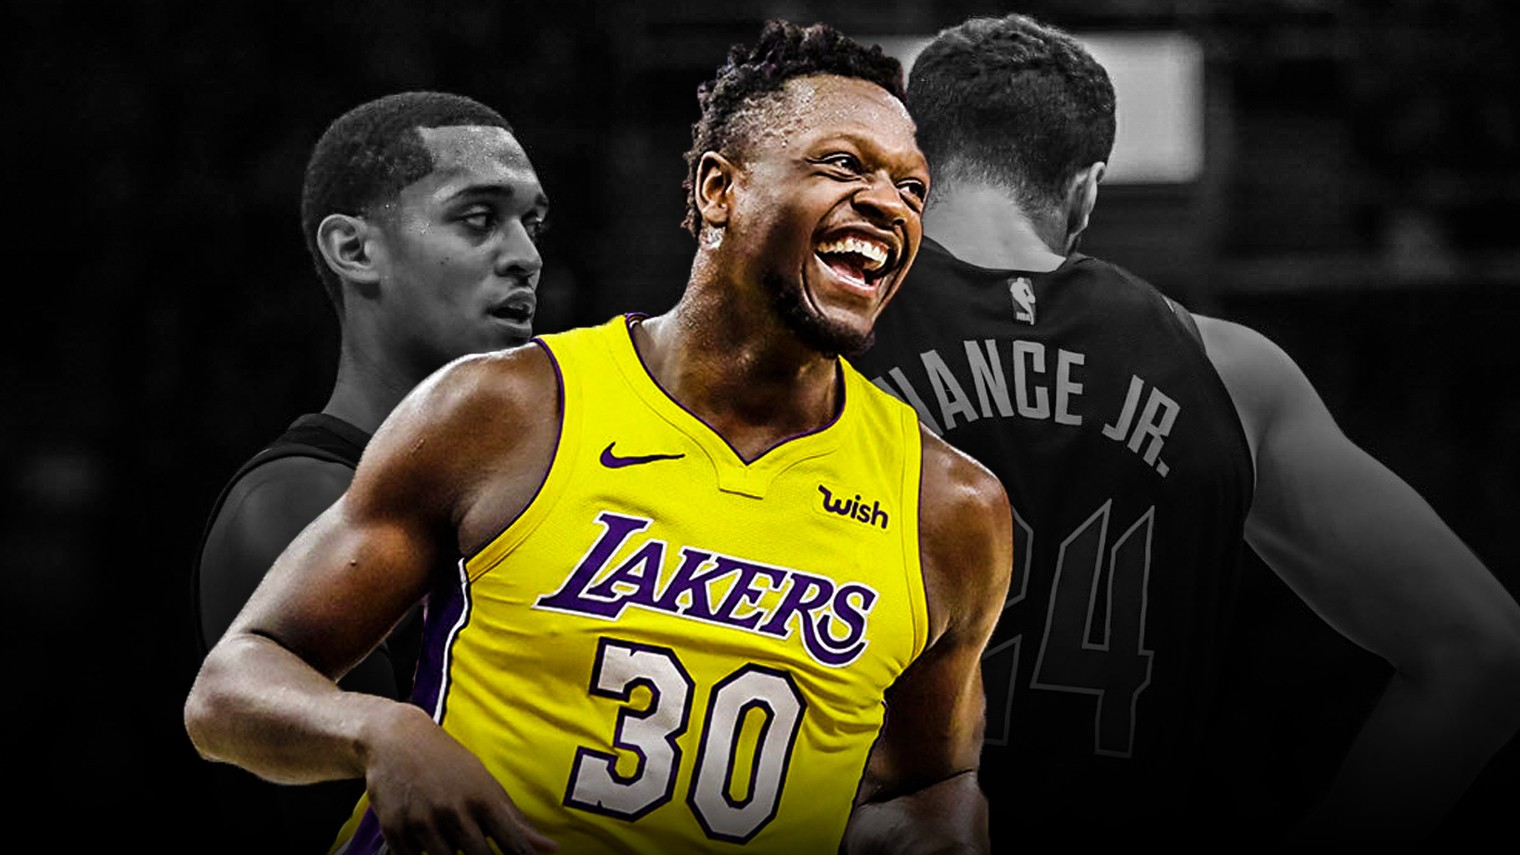 0f45c243a16 Julius Randle s journey from trade bait to budding superstar should make  the Lakers think twice before trading any more of their talented young core.